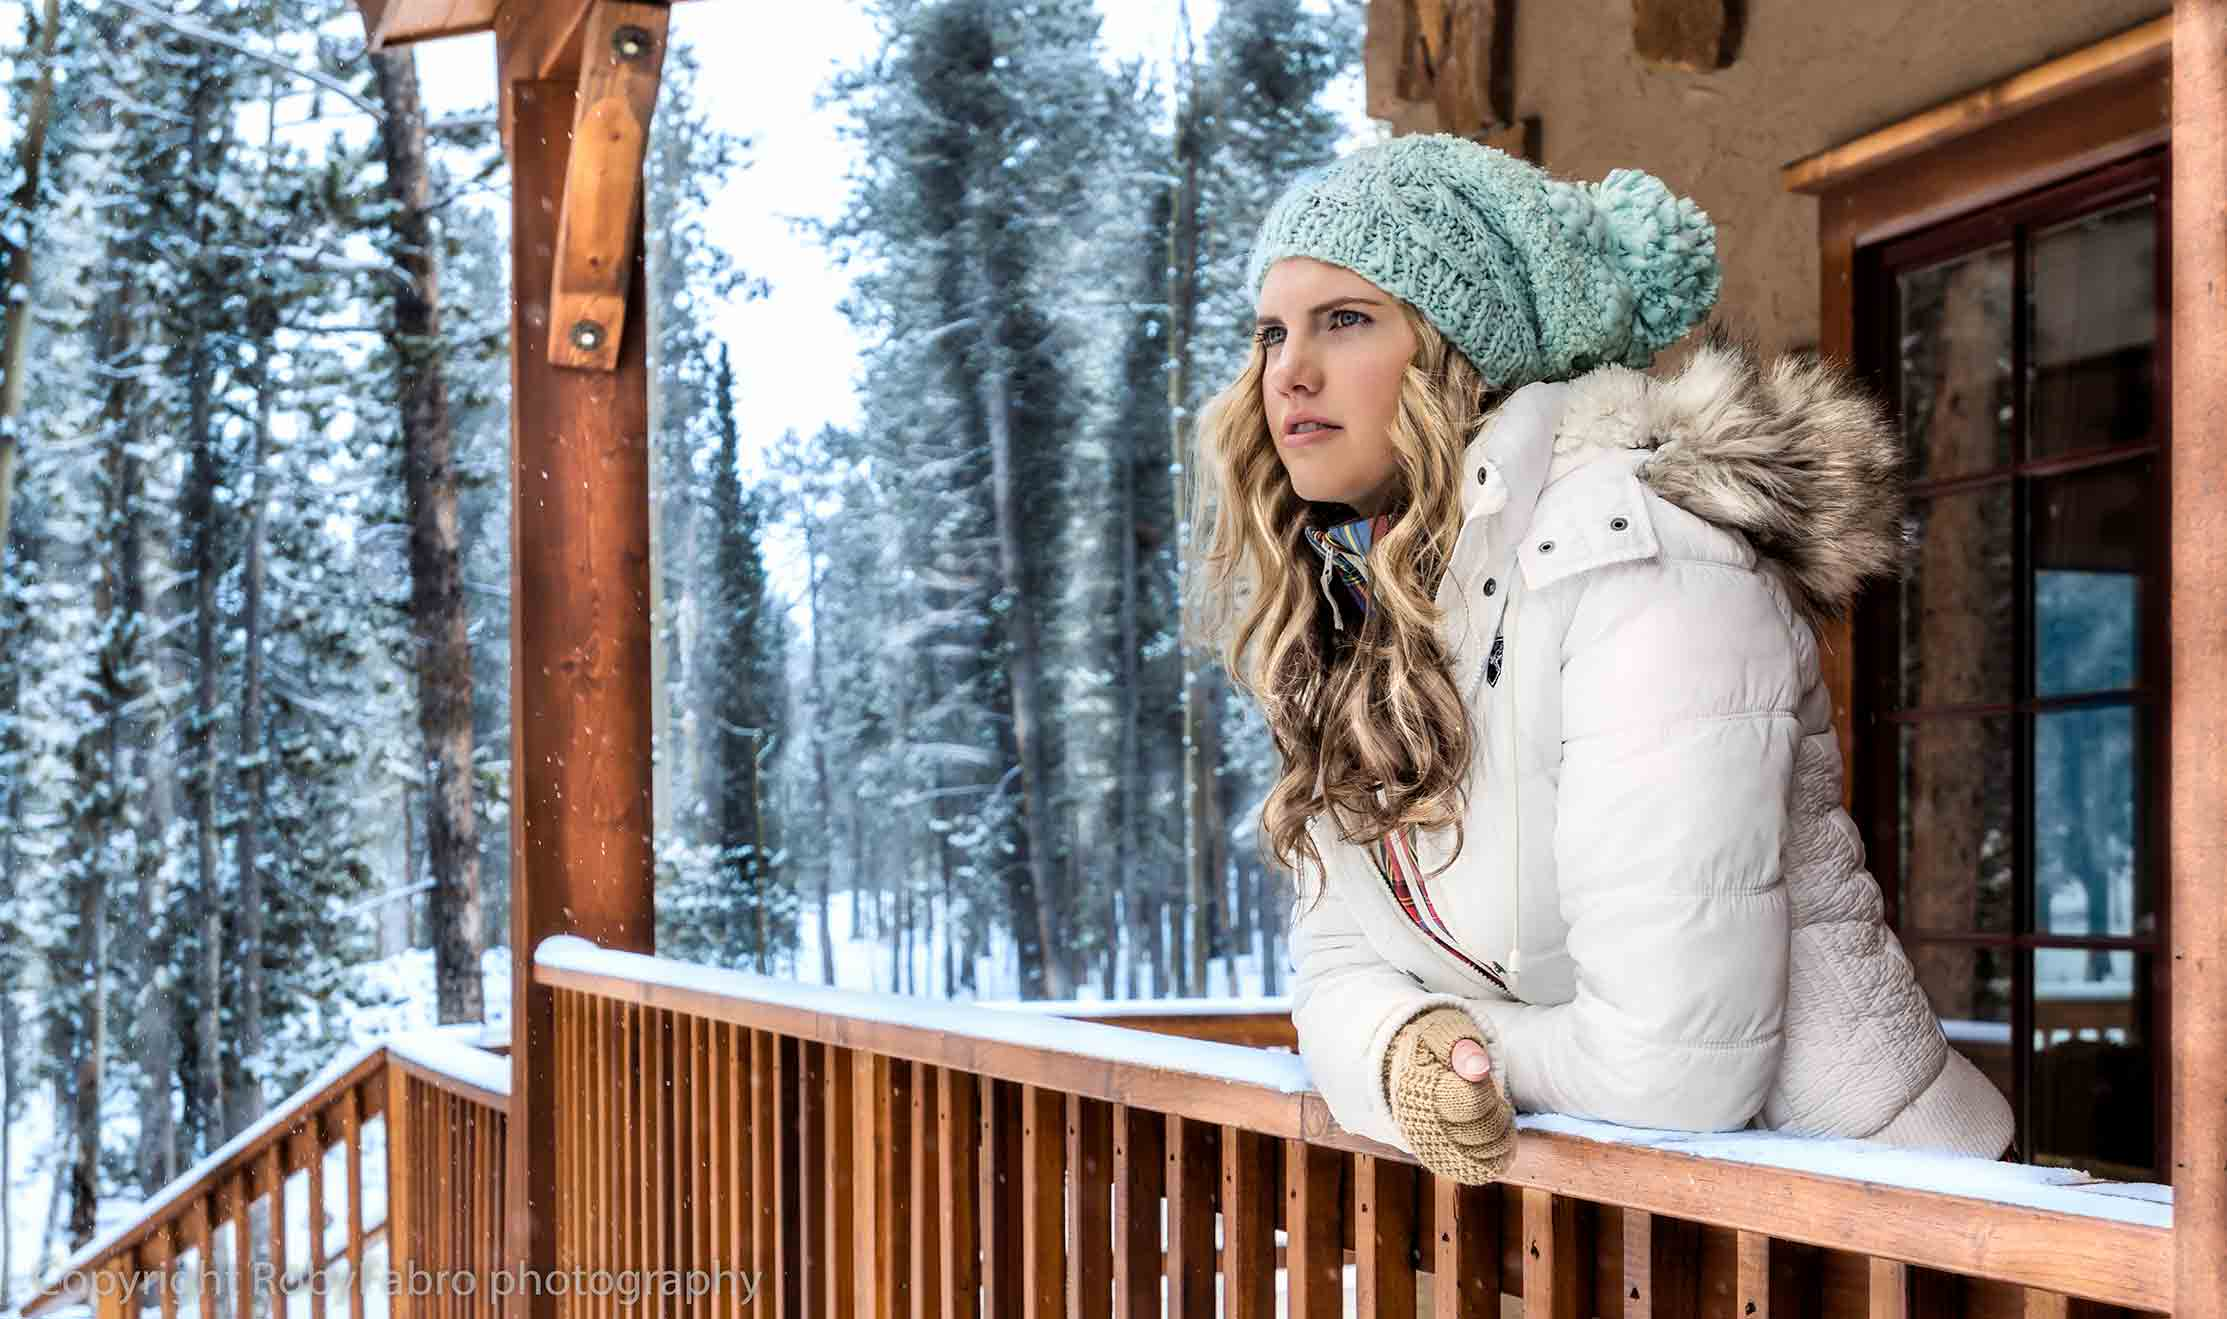 Fashion lifestyle photography, Breckenridge, Colorado